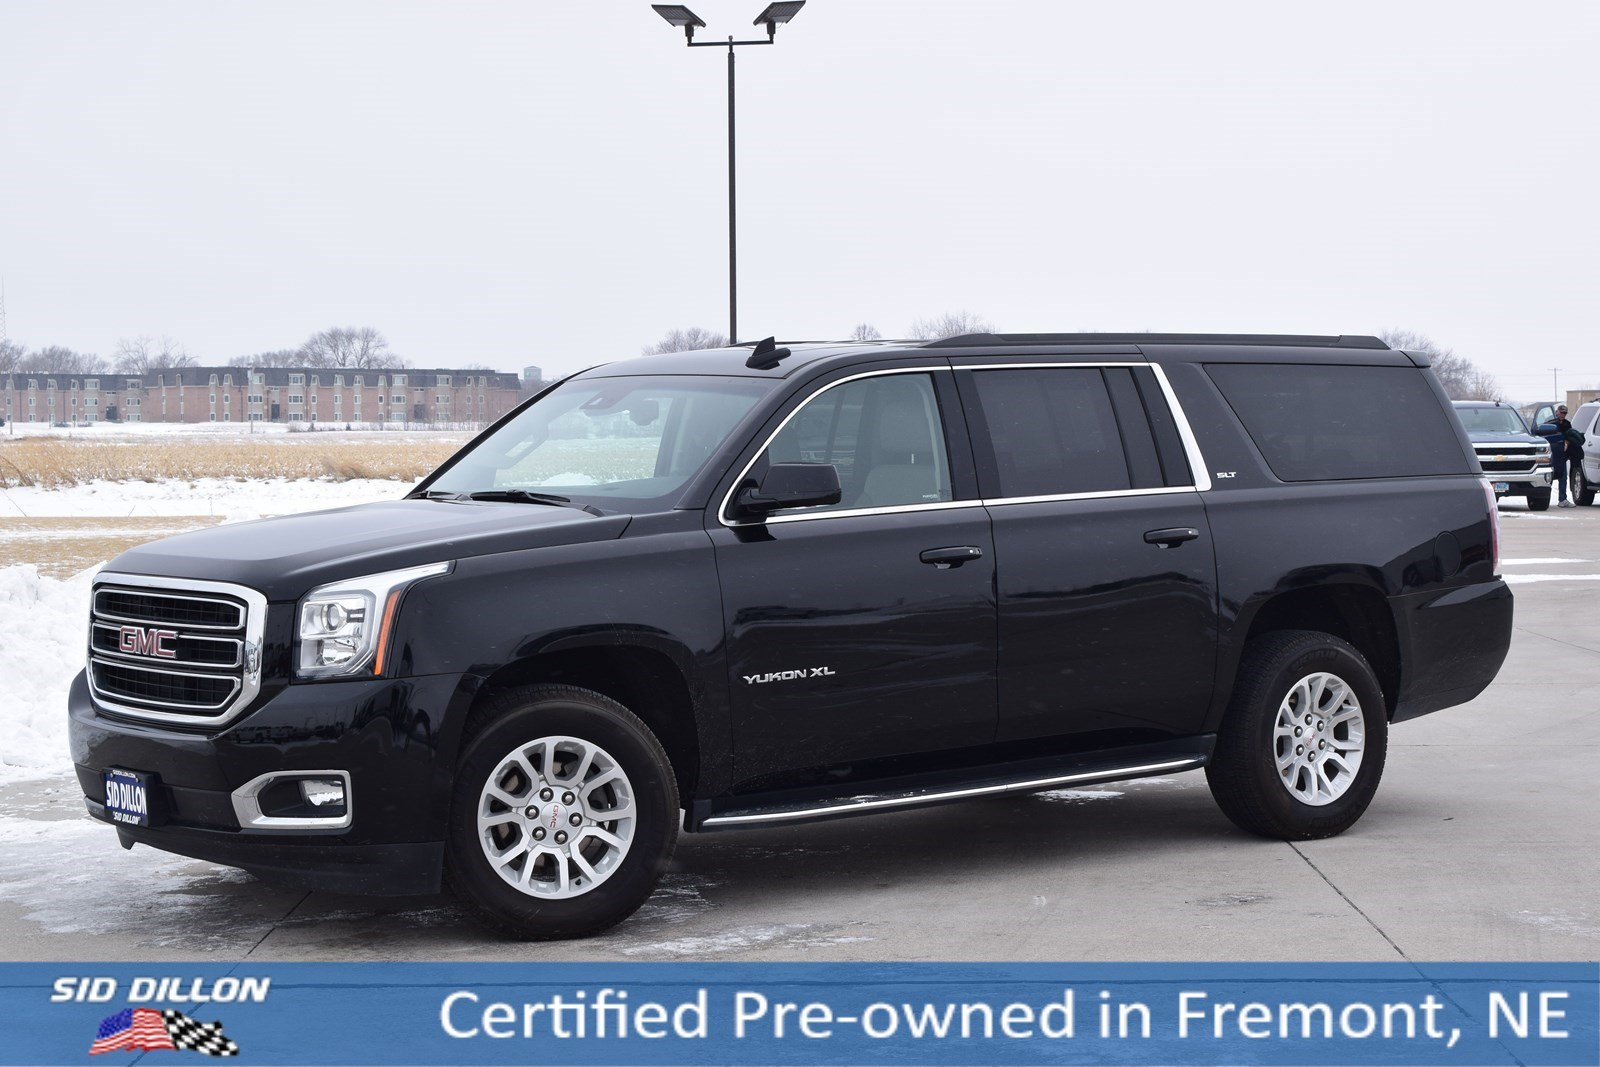 Certified Pre Owned 2018 Gmc Yukon Slt Suv In Fremont 1t2944g Sid 2005 Nissan Maxima Alternator Wiring Diagram